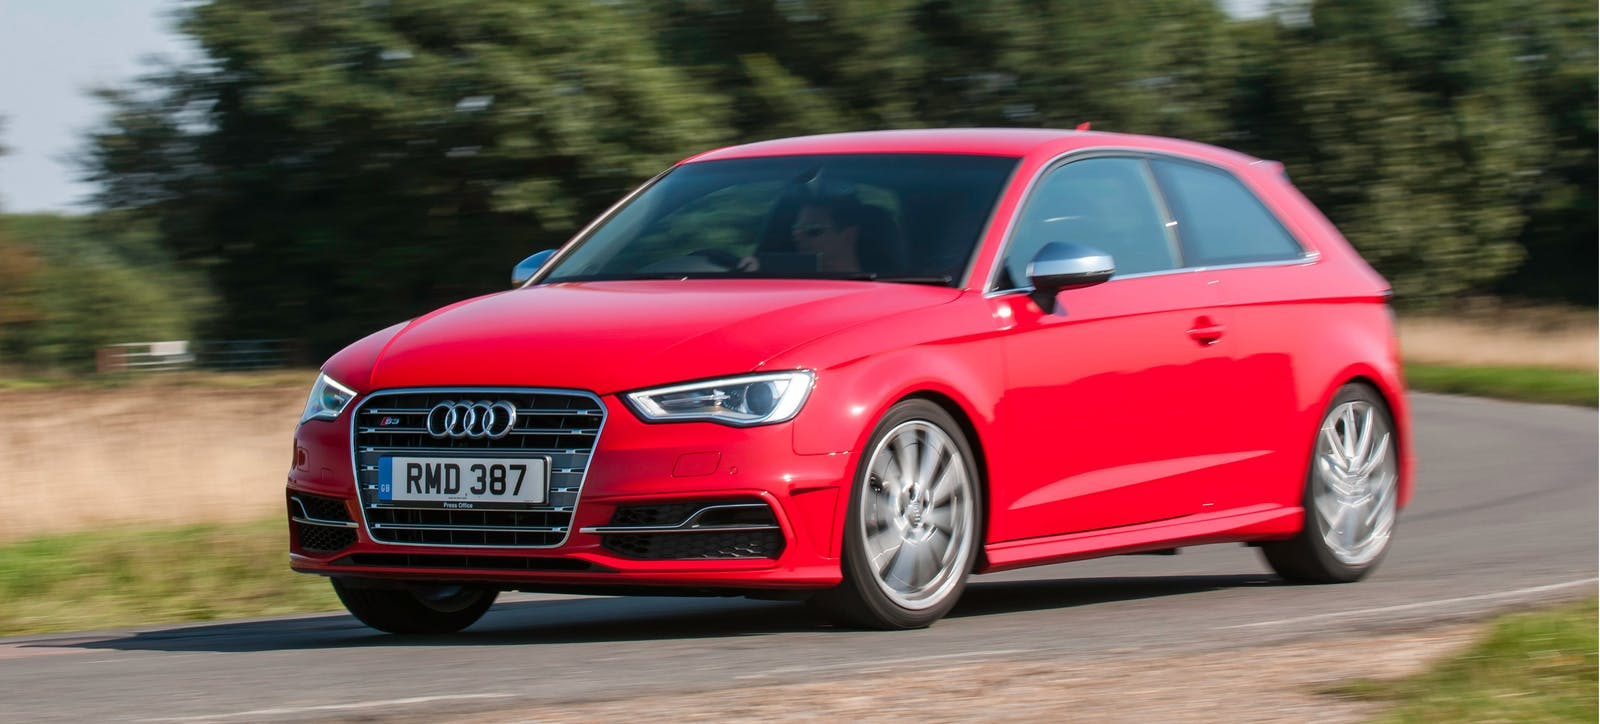 VW Golf R vs Audi S3 which is the best super hatch on sale ...